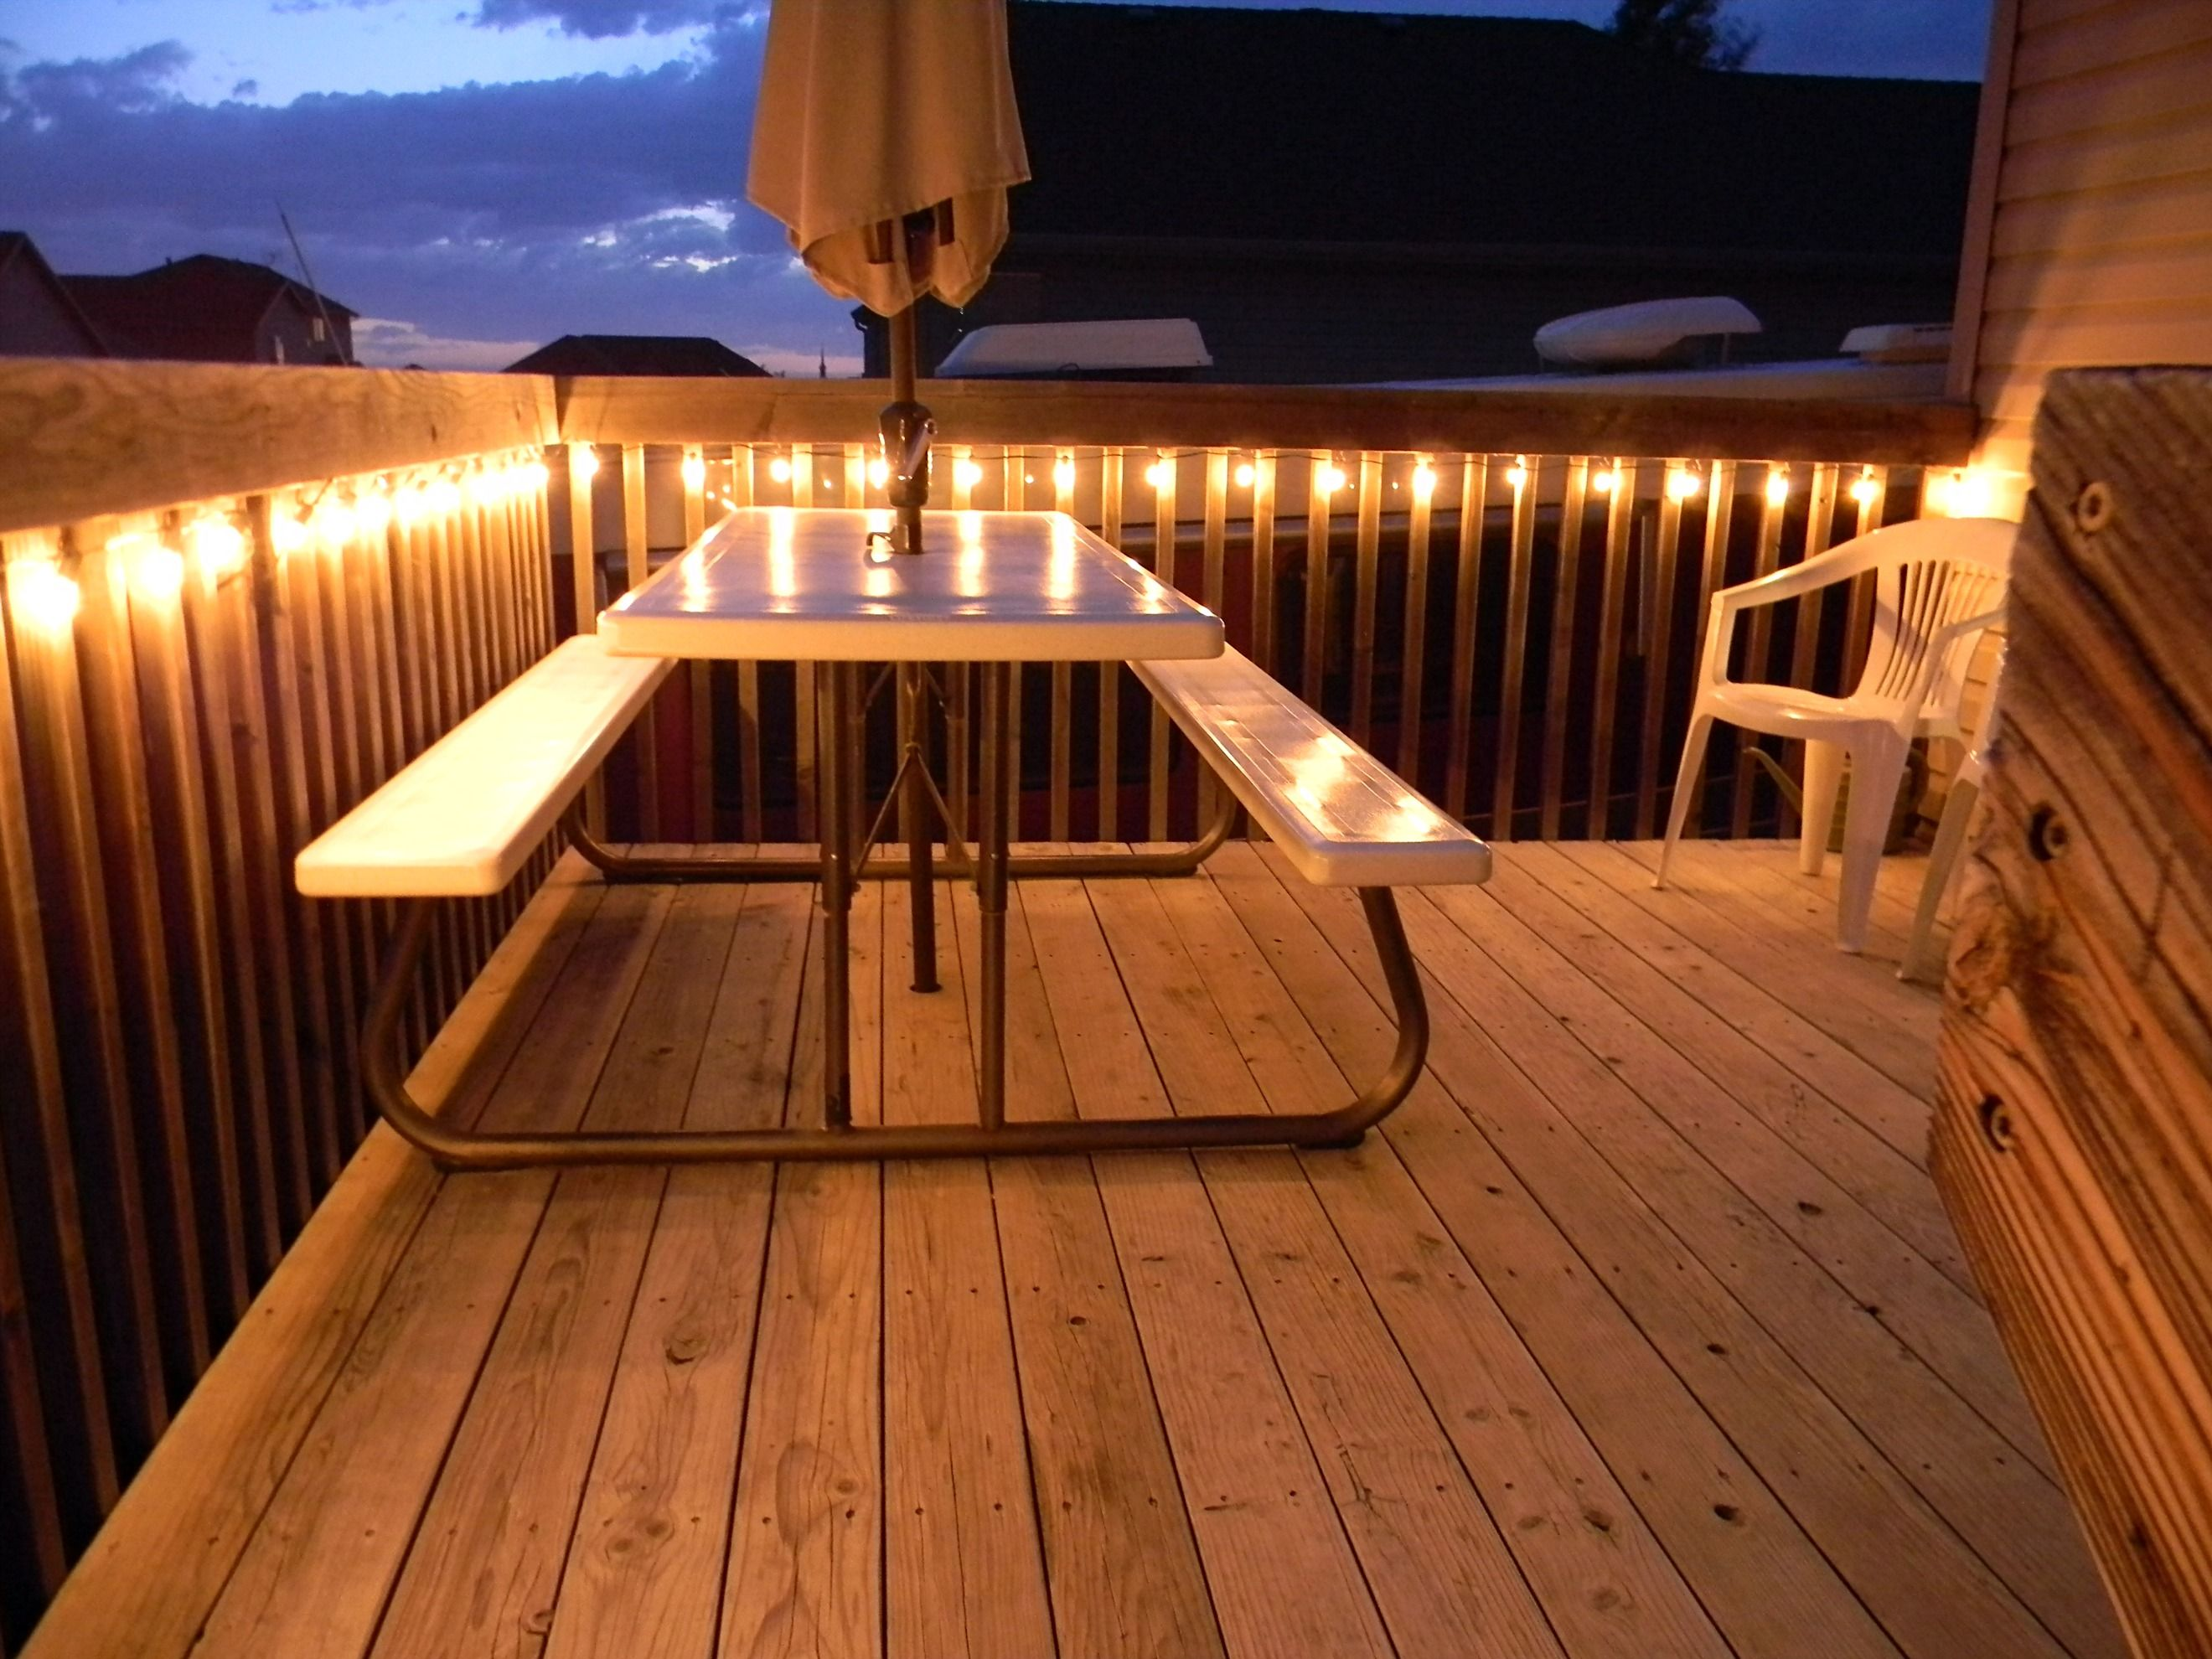 Diy Decking Ideas For Before Next Spring Season Deck